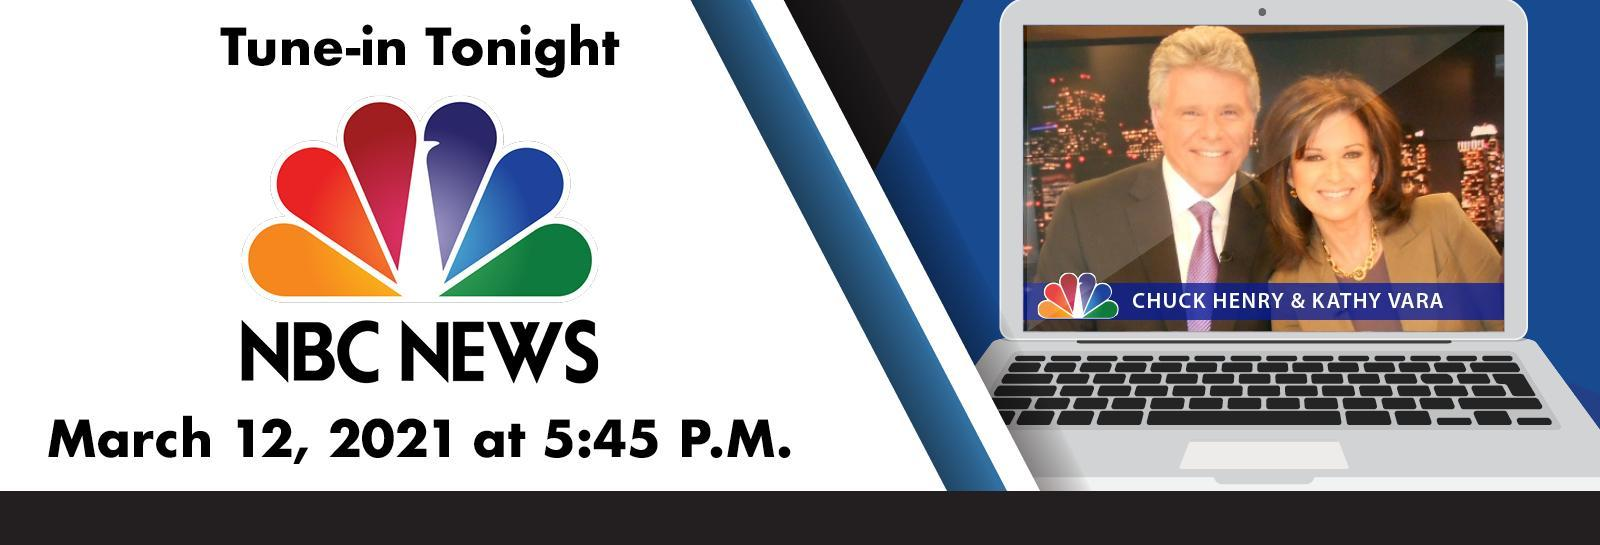 Tune-in Tonight NBC NEWS March 12, 2021 at 5:45 P.M.